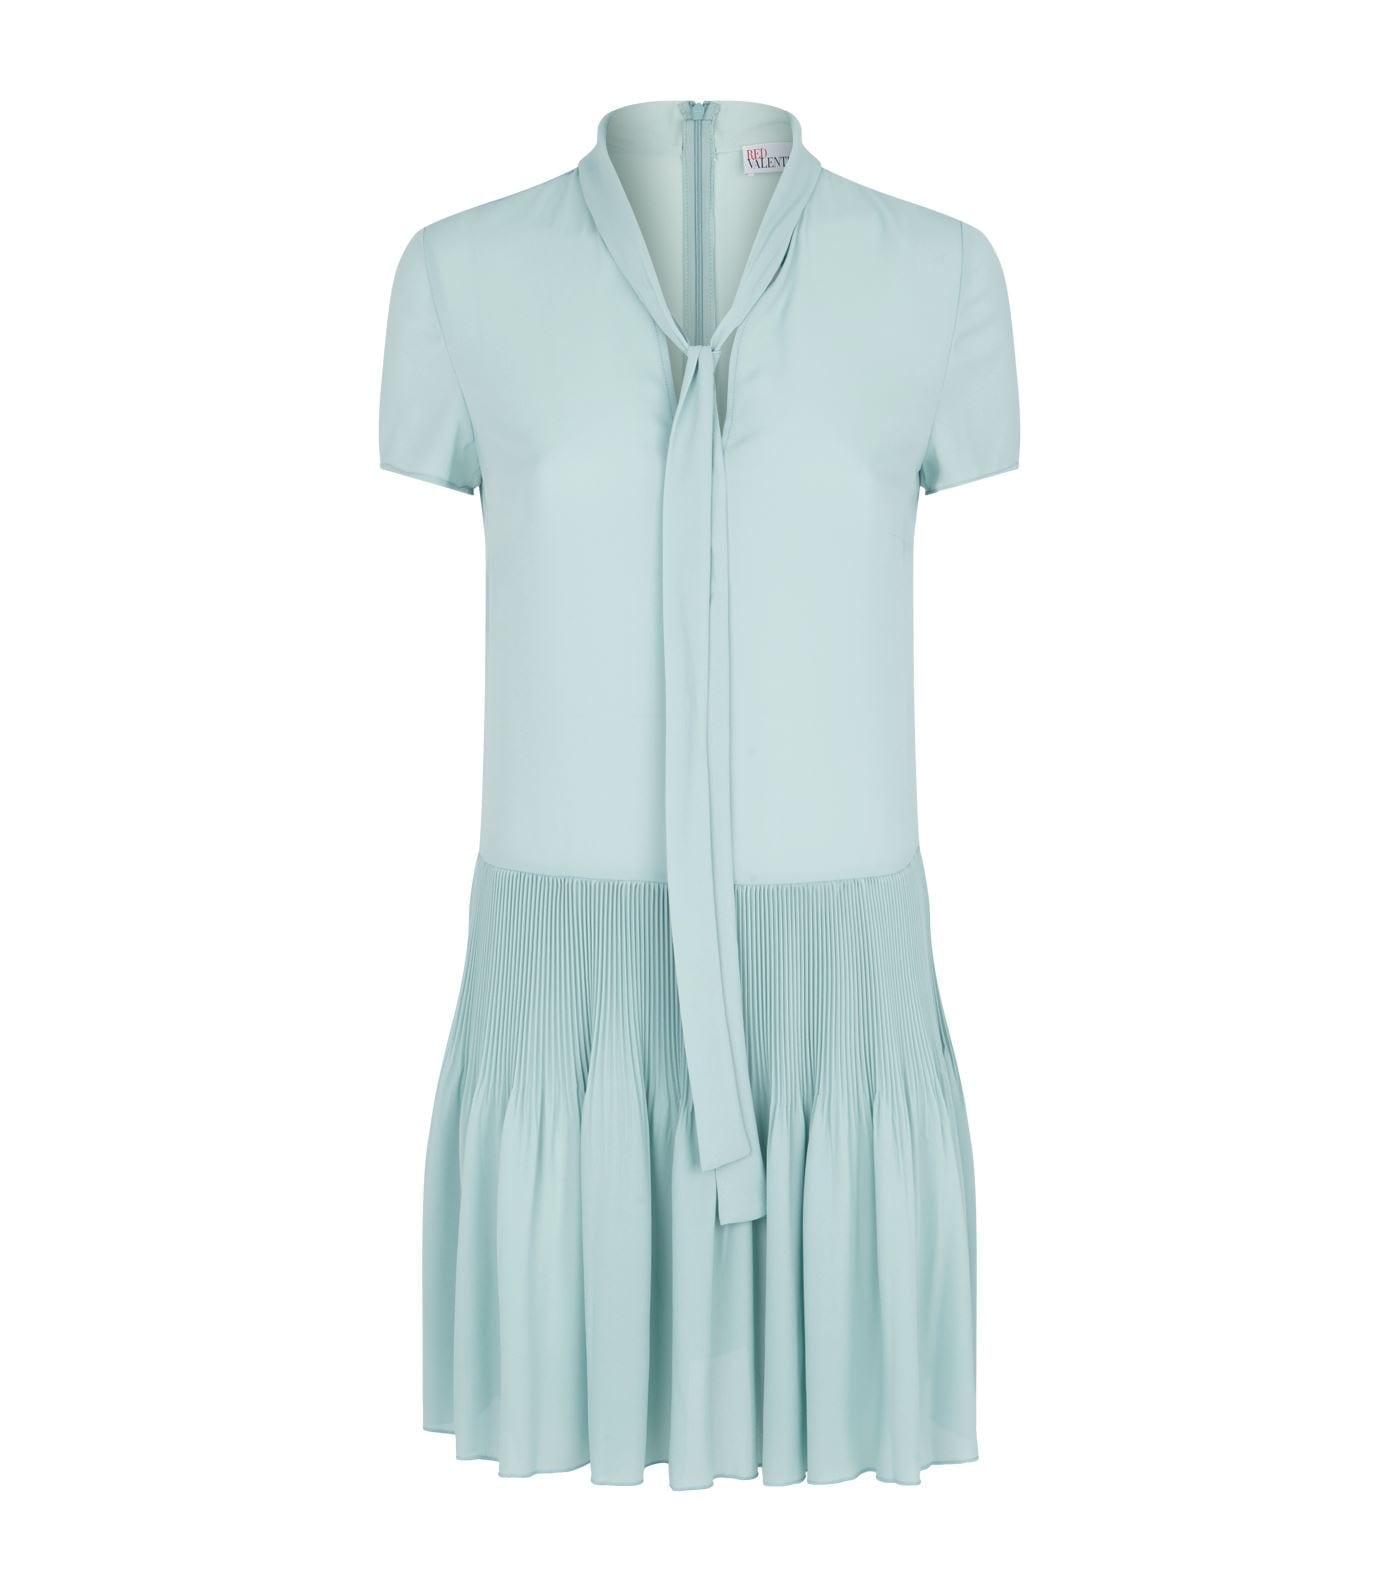 RED VALENTINO Tie-Neck Plissé Dress